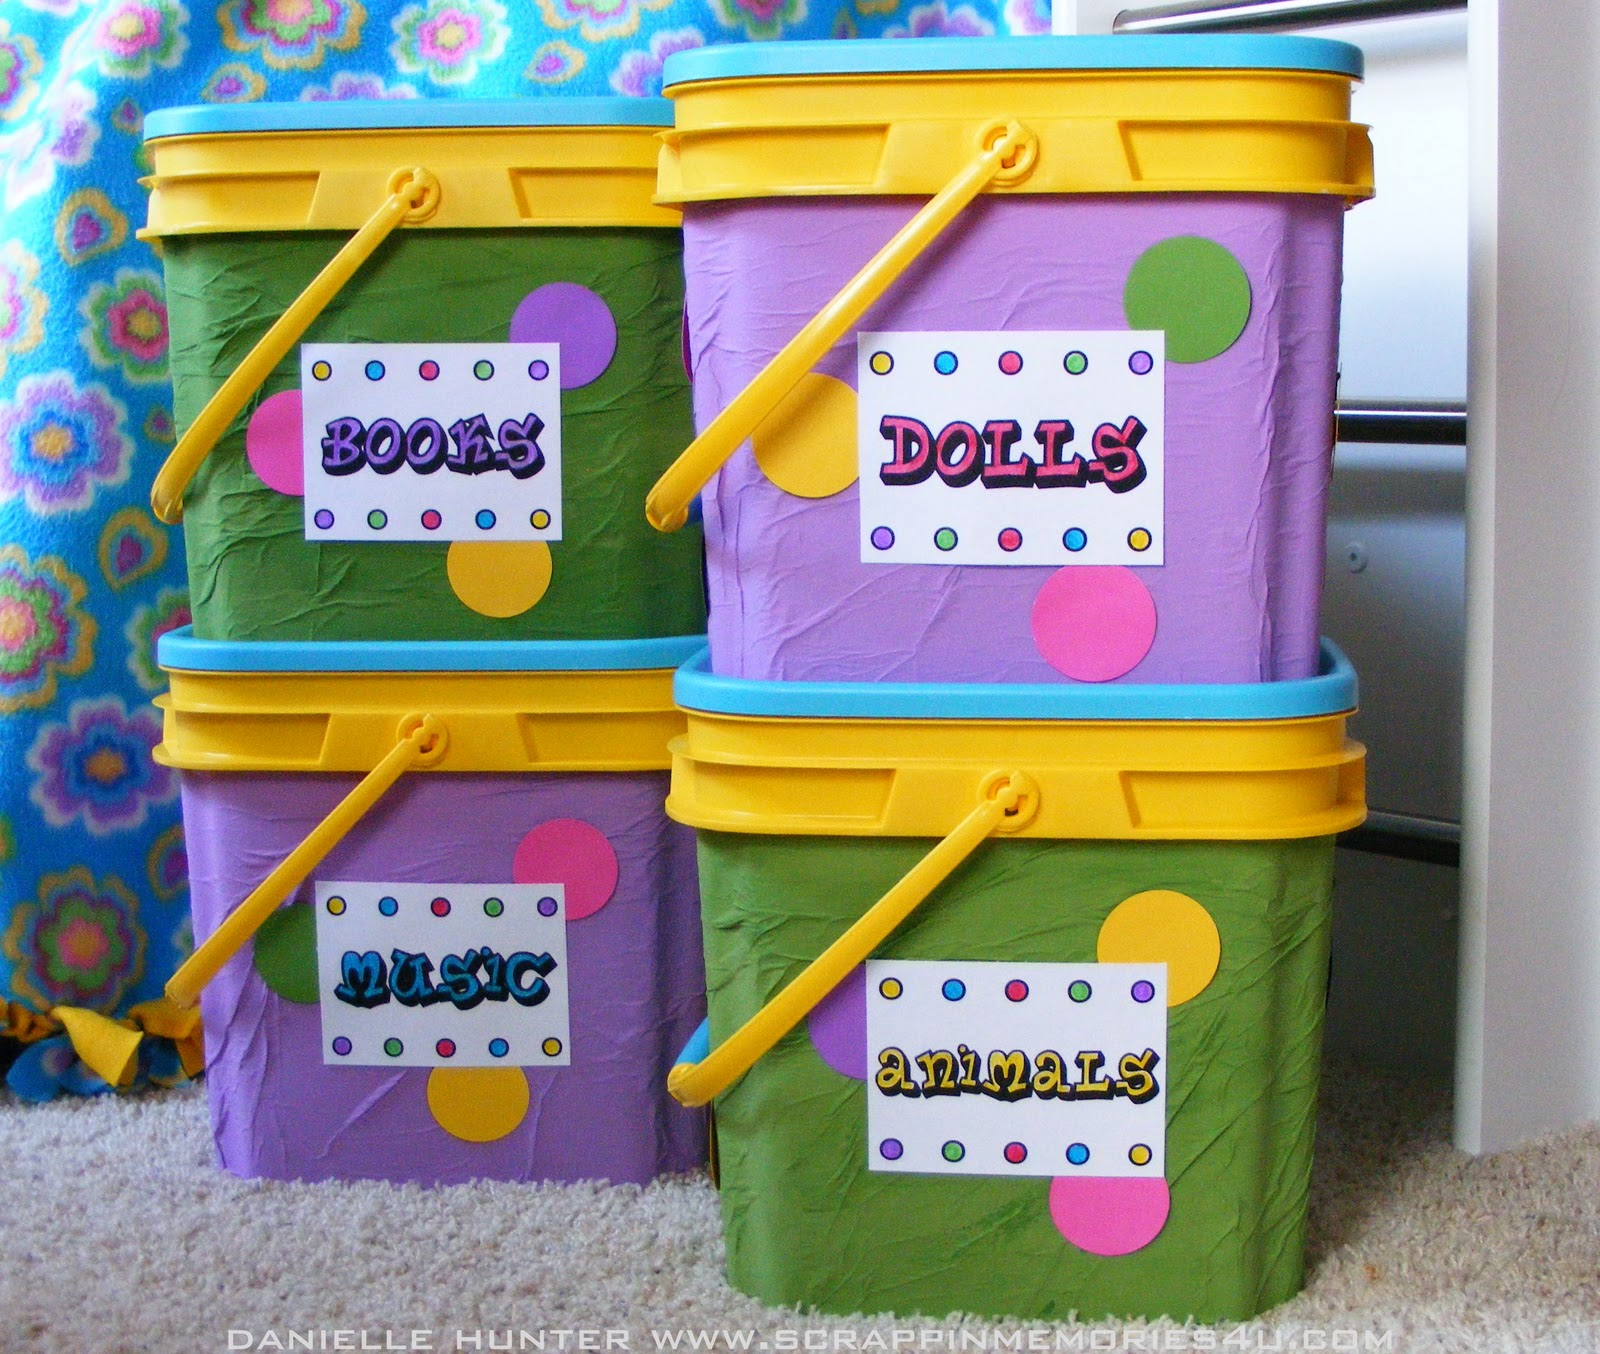 Craft storage drawers plastic - Kids Craft Idea Upcycled Toy Storage Containers